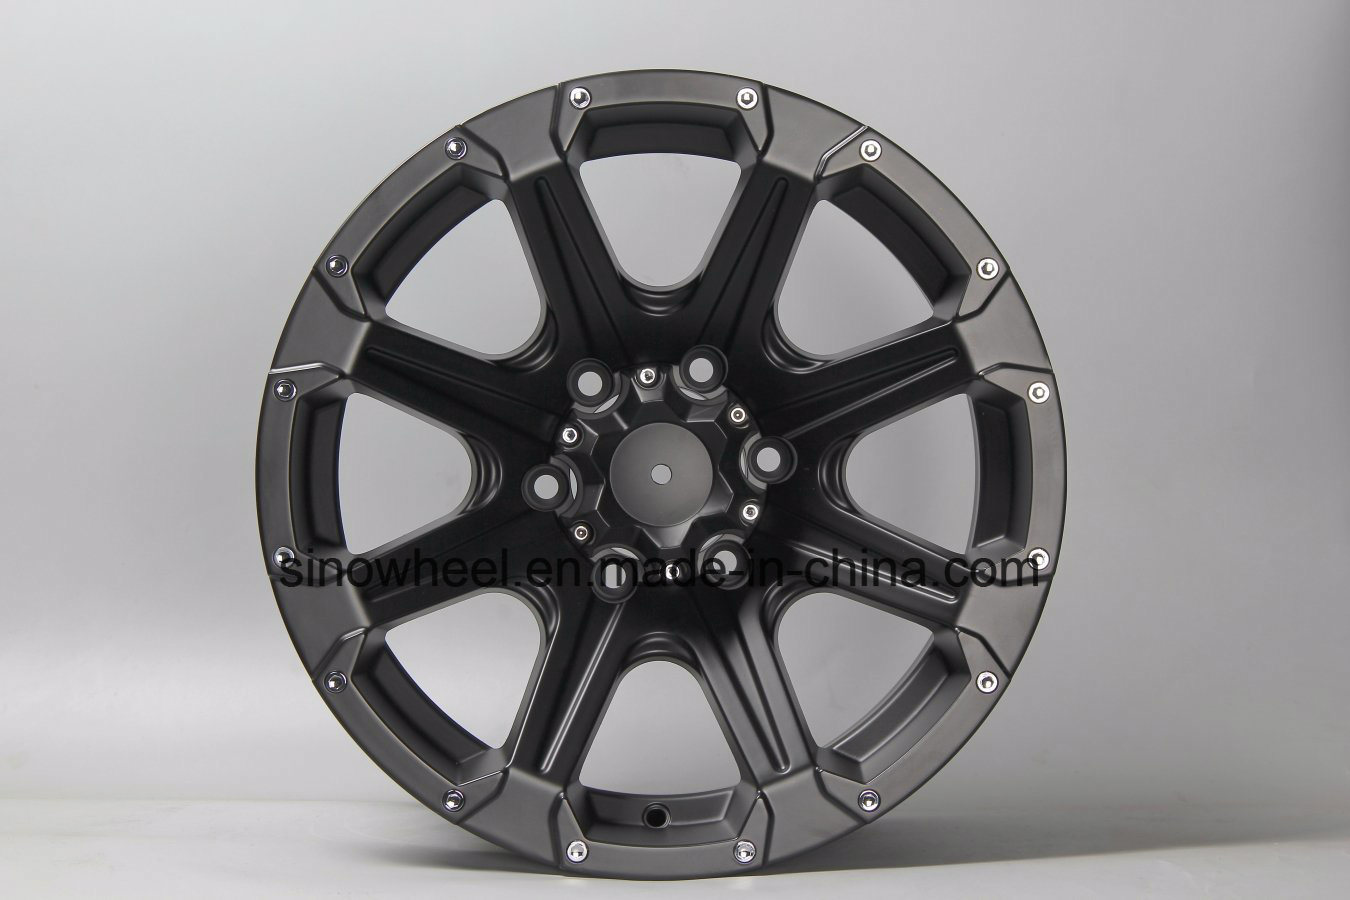 4X4 Aluminum Wheel Rim Aftermarket Alloy Wheel Rim 17X8.5